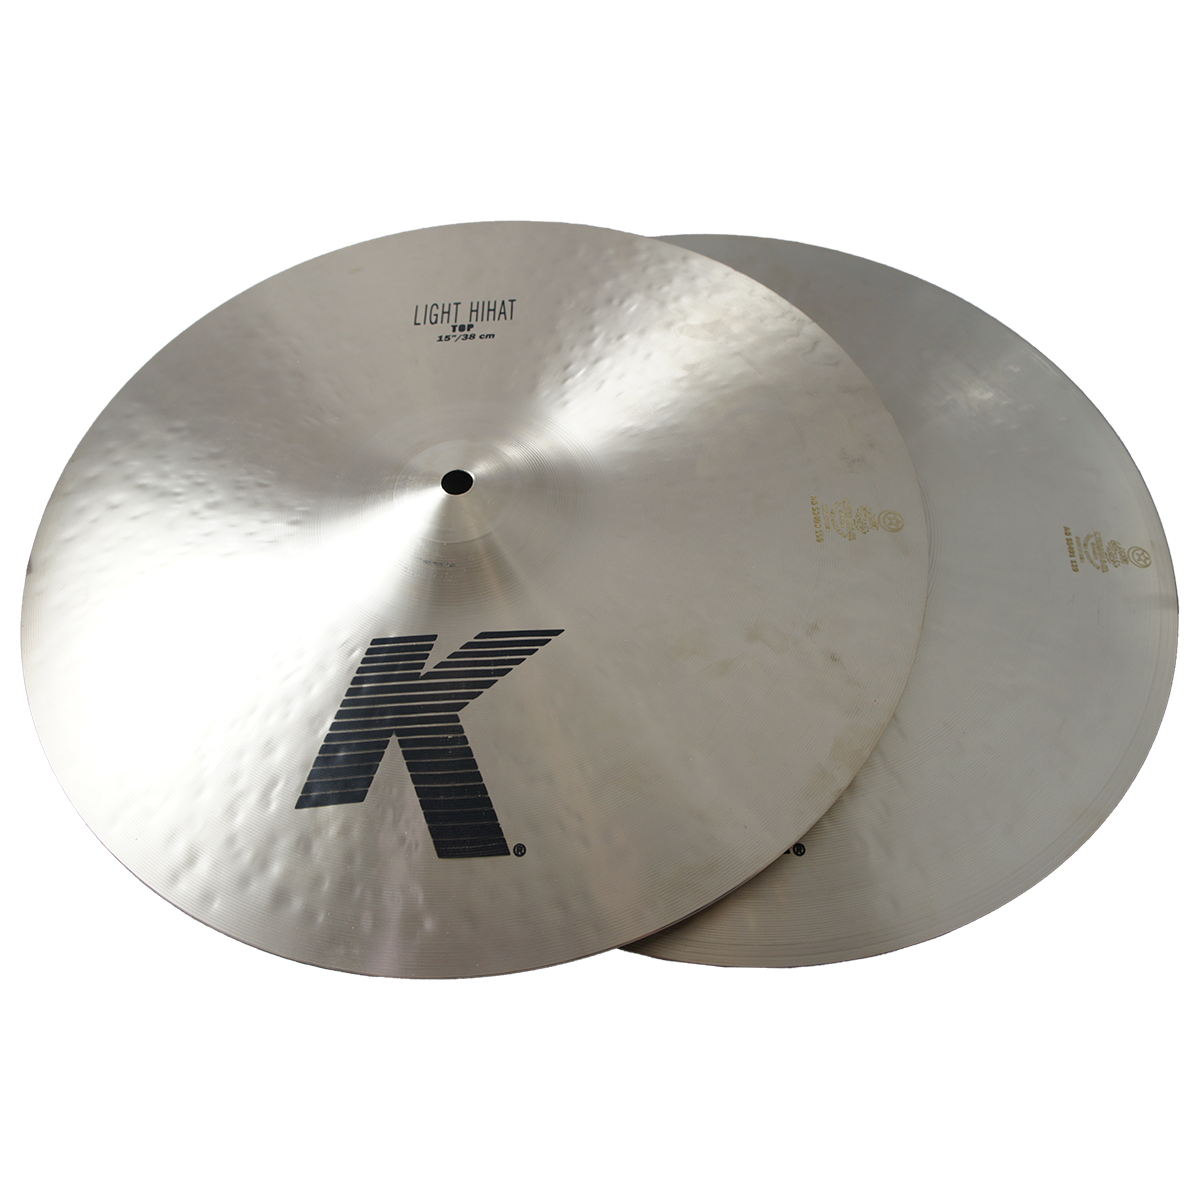 "Zildjian 15"" K Zildjian Light Hihat Pair Drumset Cast Bronze Cymbals with Low Pitch and Dark Sound K0923"